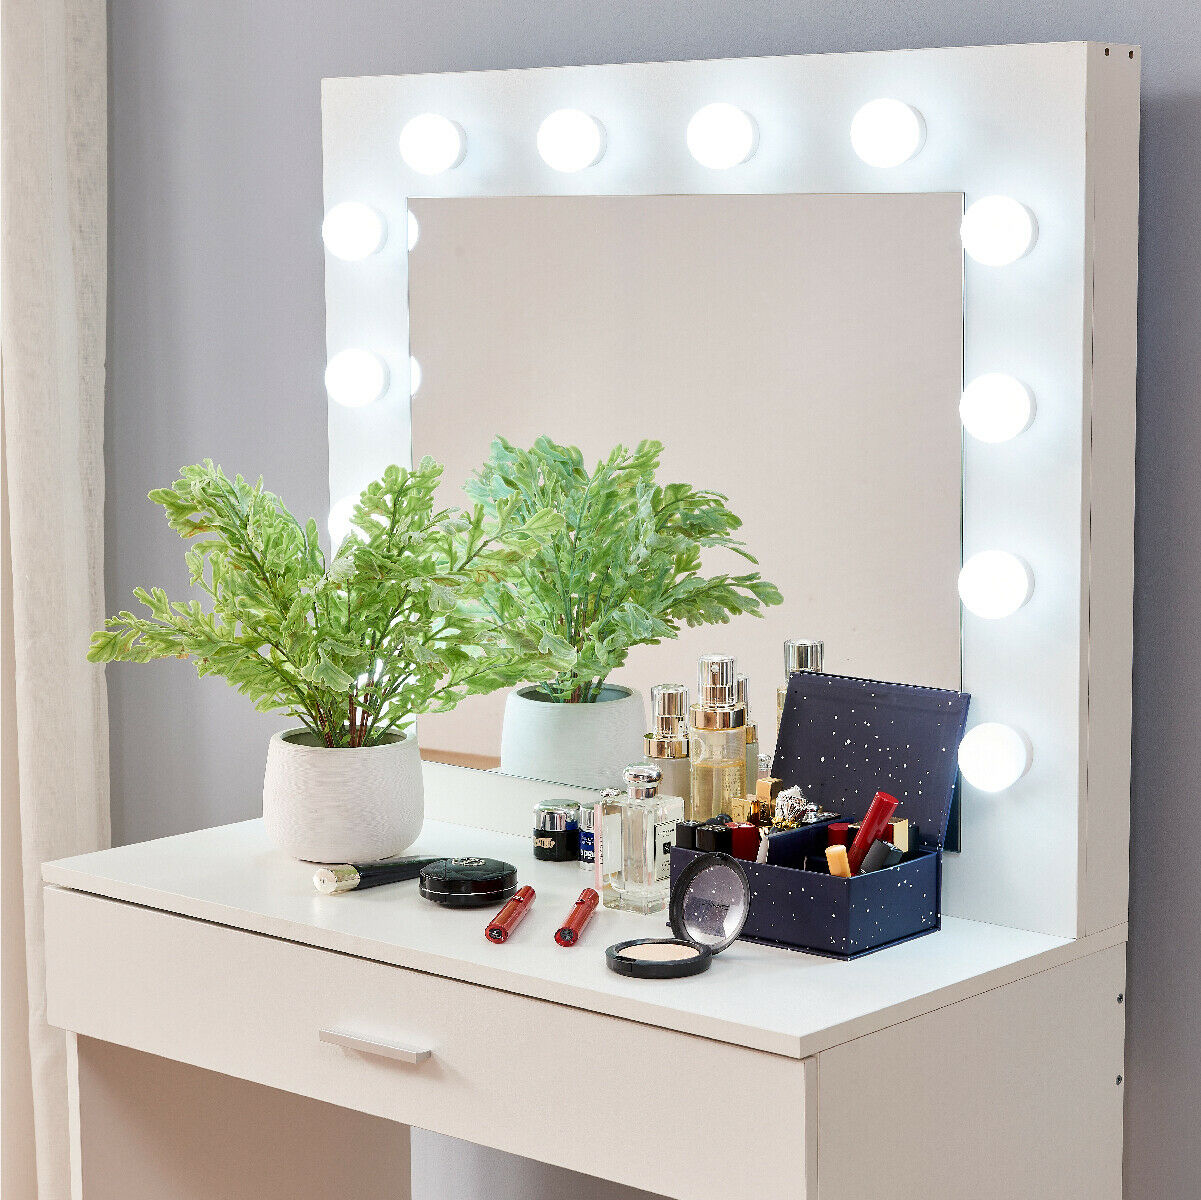 Premium Wood Makeup Vanity Dressing Table Drawer Set LED Lights - Morealis